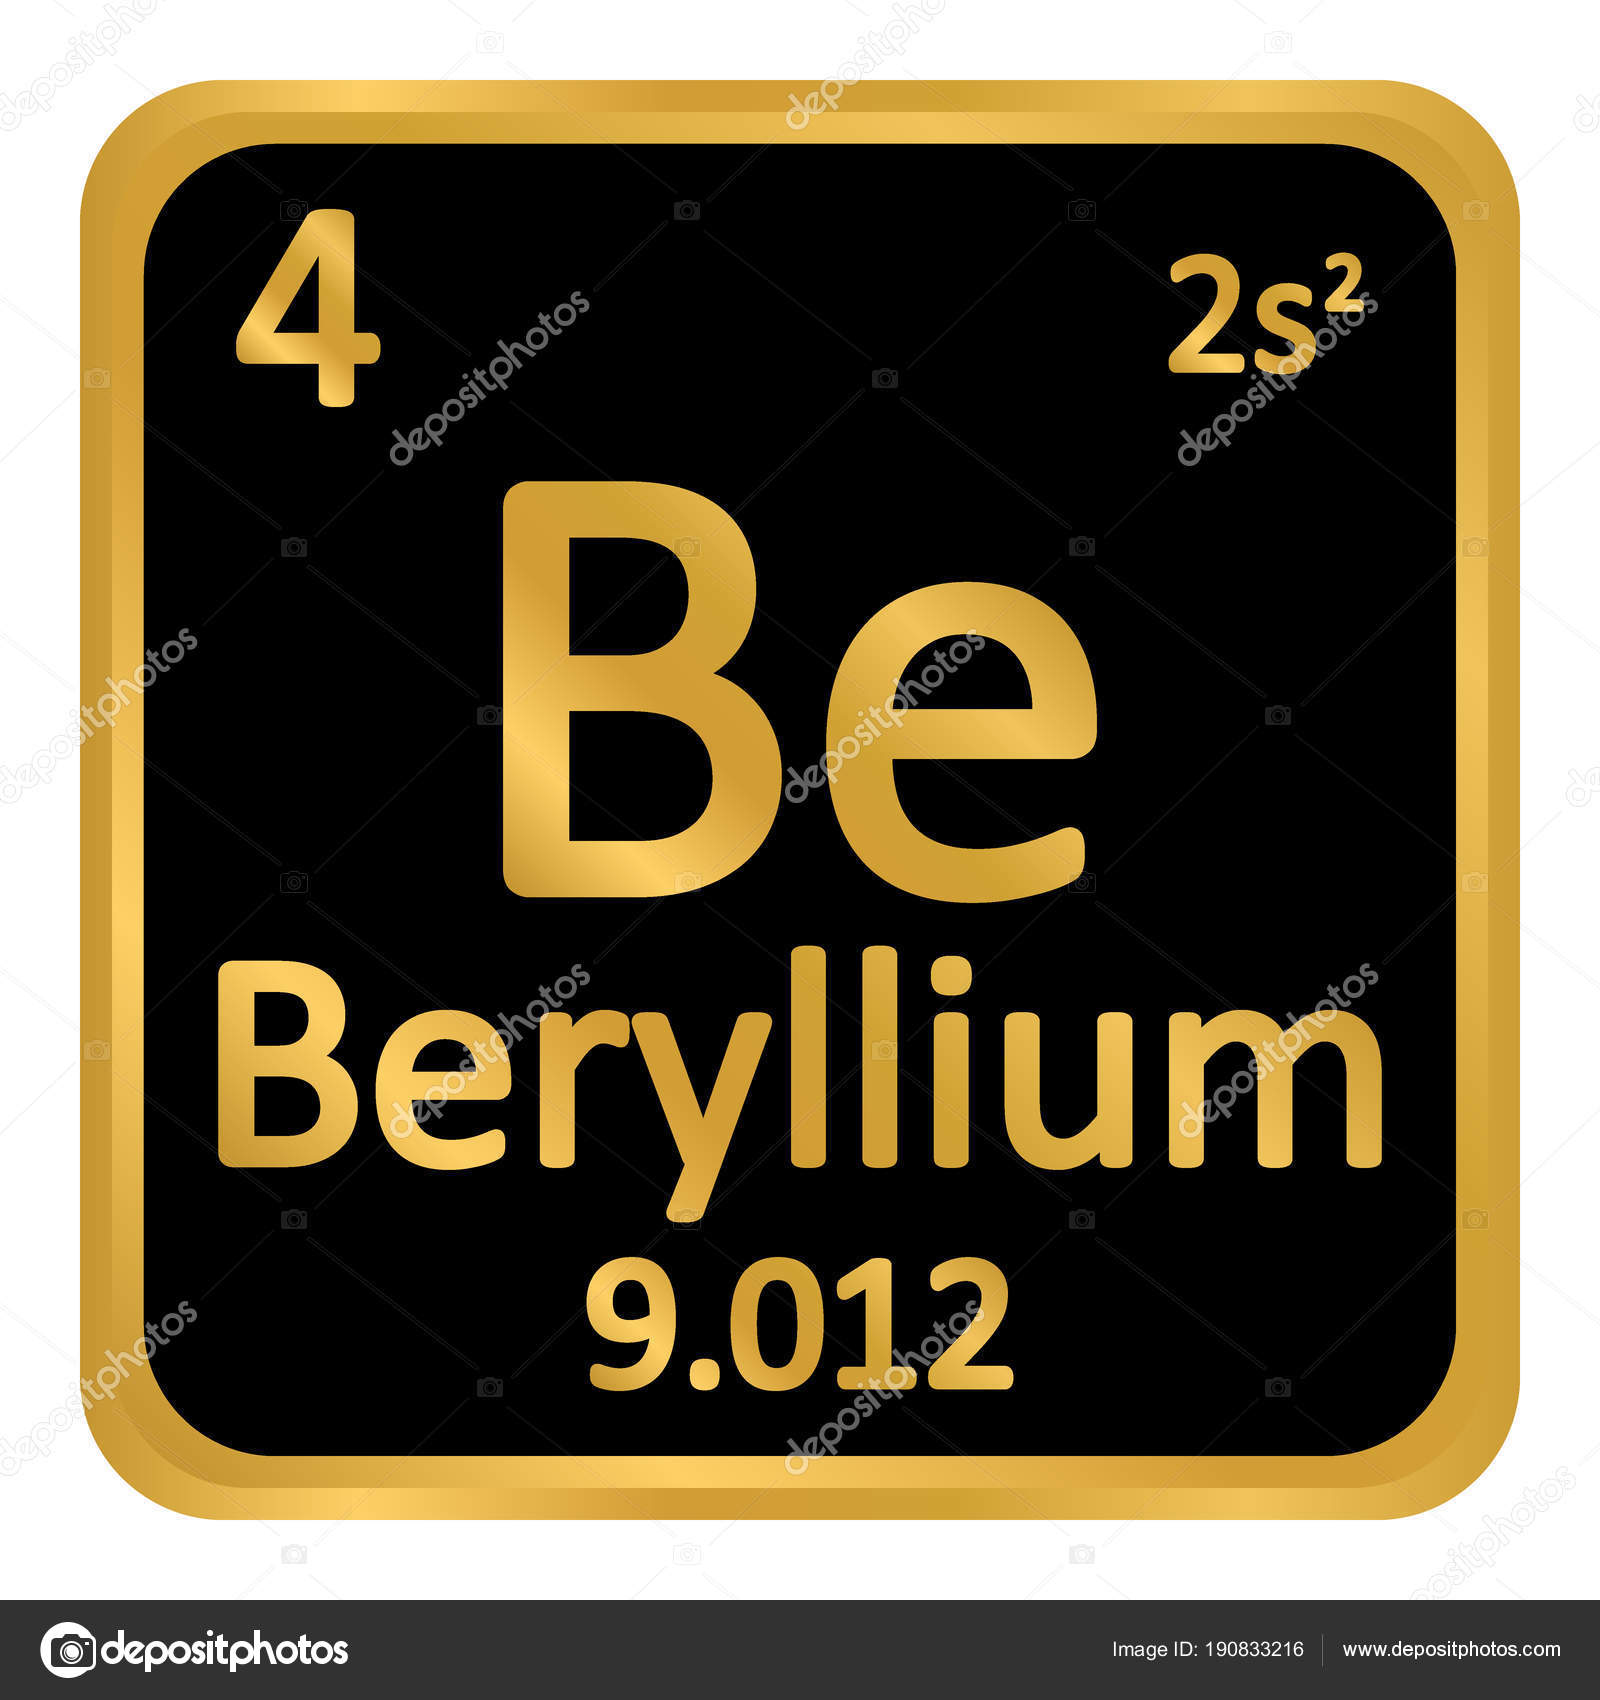 Periodic table element beryllium icon stock vector konstsem periodic table element beryllium icon stock vector urtaz